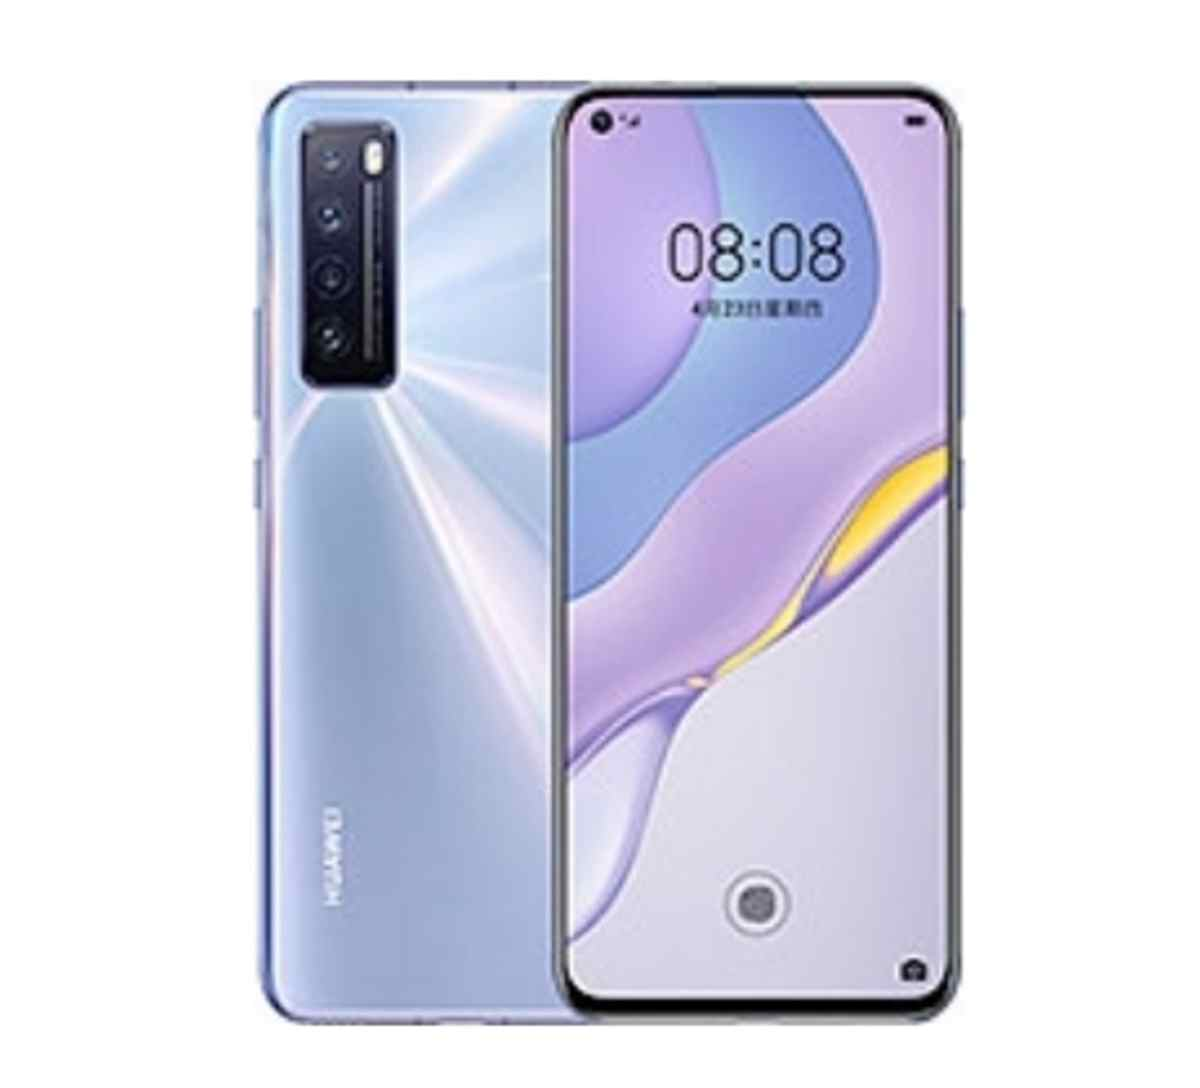 Huawei nova 7 5g, huawei nova 7 5g price in nigeria, price of huawei nova 7 5g in nigeria, huawei nova 7 5g specs and price, how much is the price of huawei nova 7 5g in nigeria, huawei nova 7 5g specs, huawei nova 7 5g price, where to buy the huawei nova 7 5g in nigeria, huawei nova 7 5g in nigeria